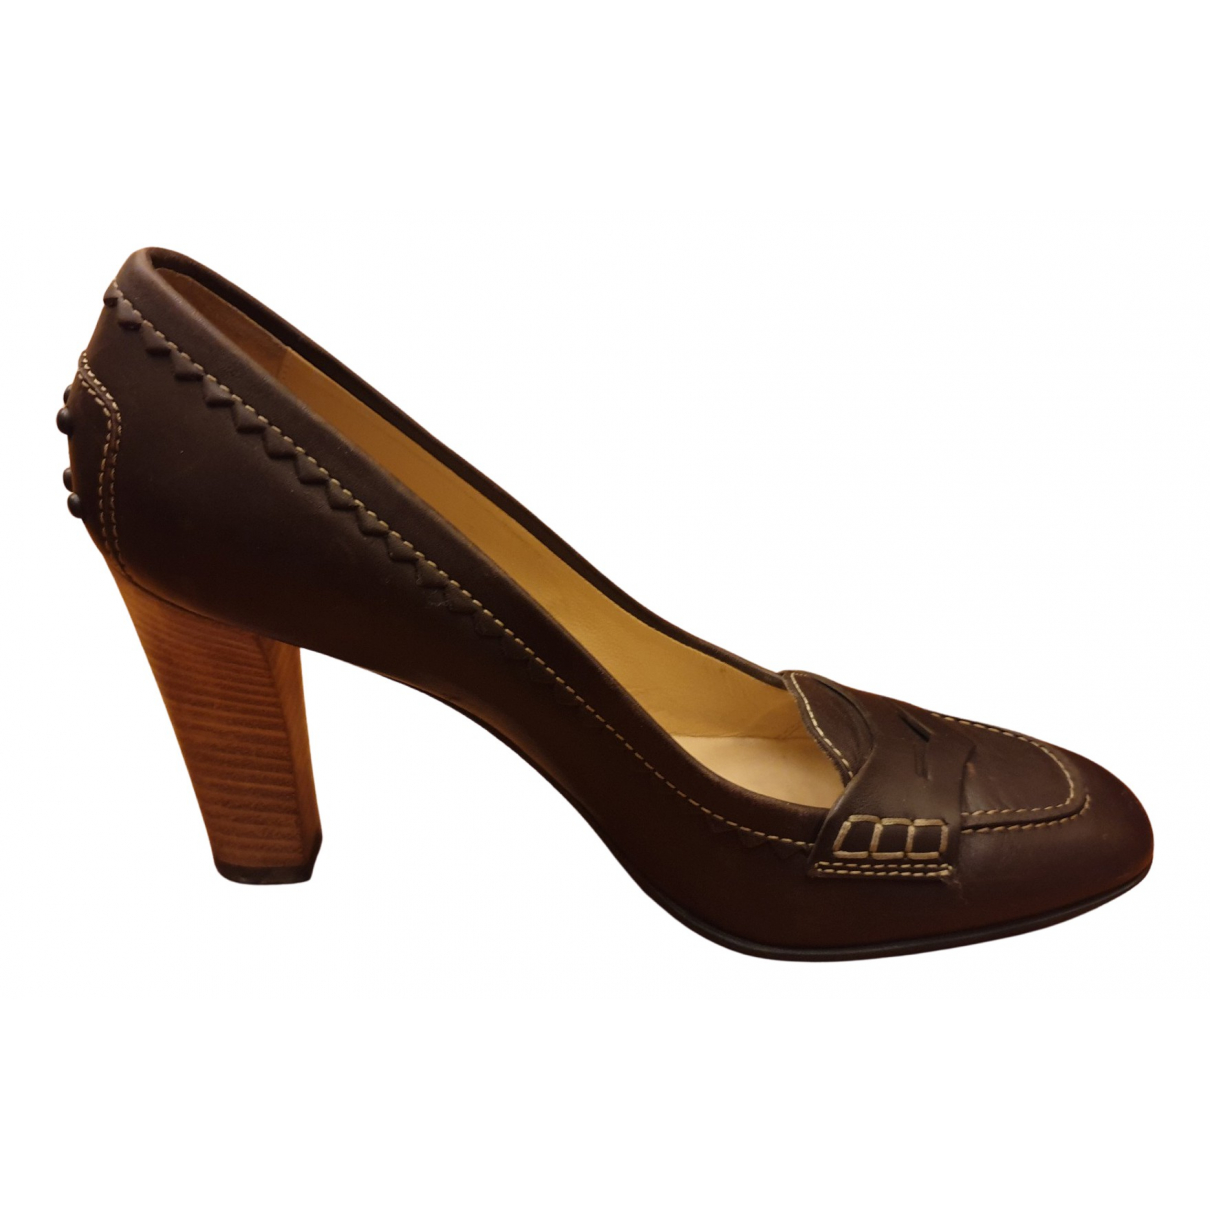 Tod's N Brown Leather Heels for Women 38 EU